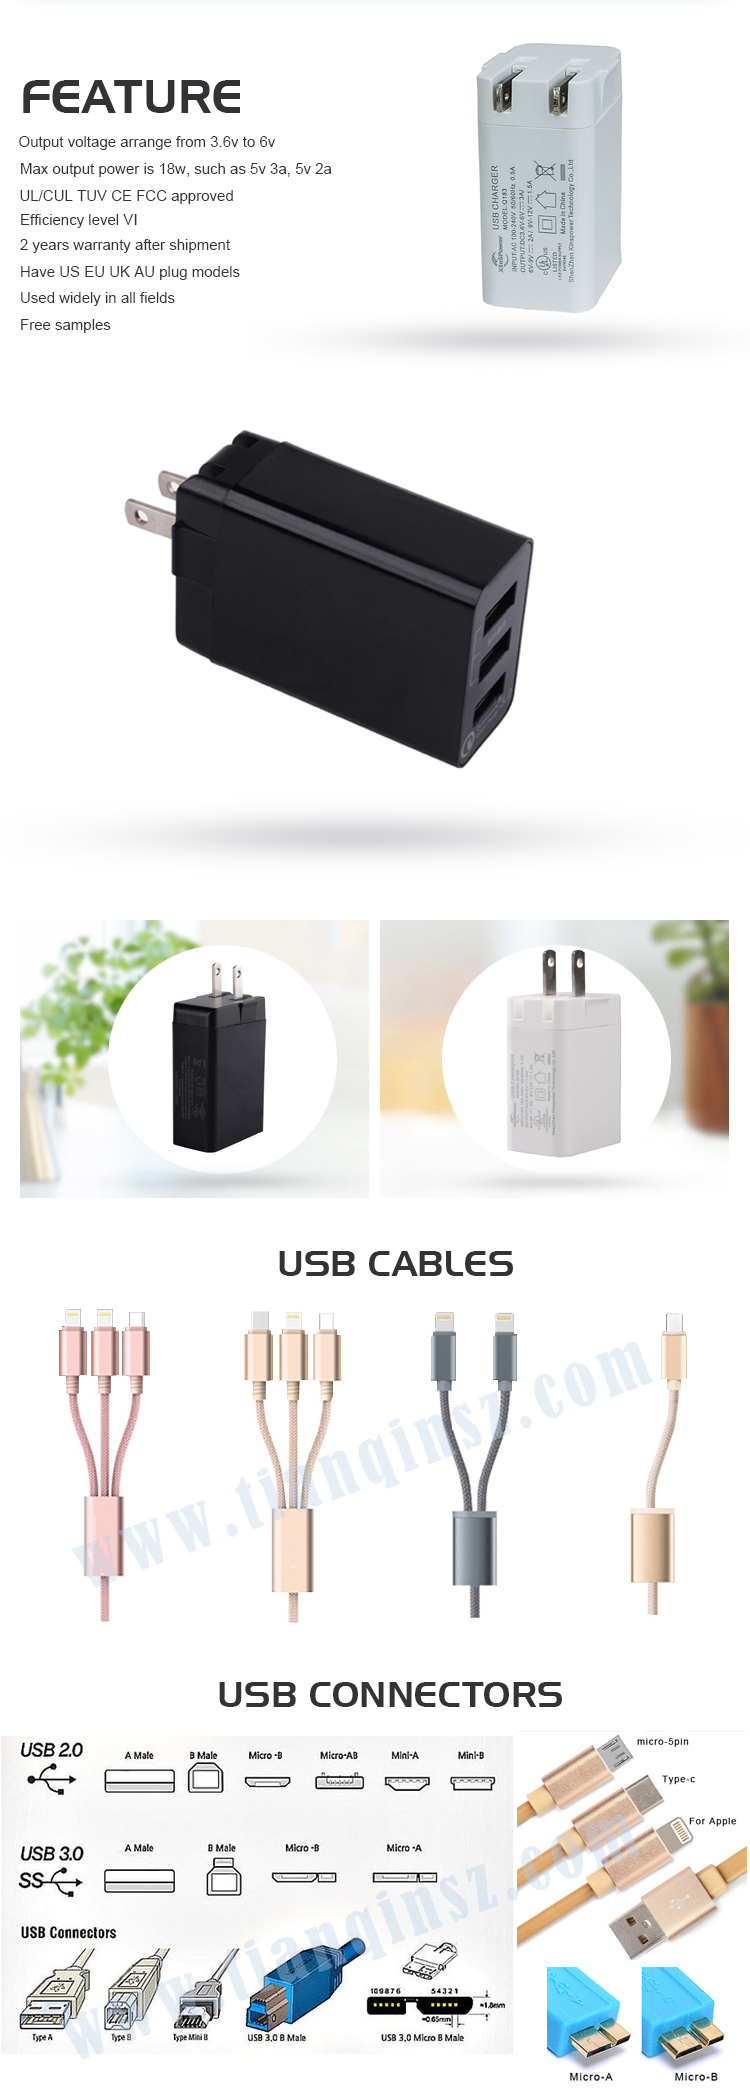 Level VI multi port usb charger with ULCUL GS TUV CE FCC ROHS CB SAA C-tick,2 years warranty